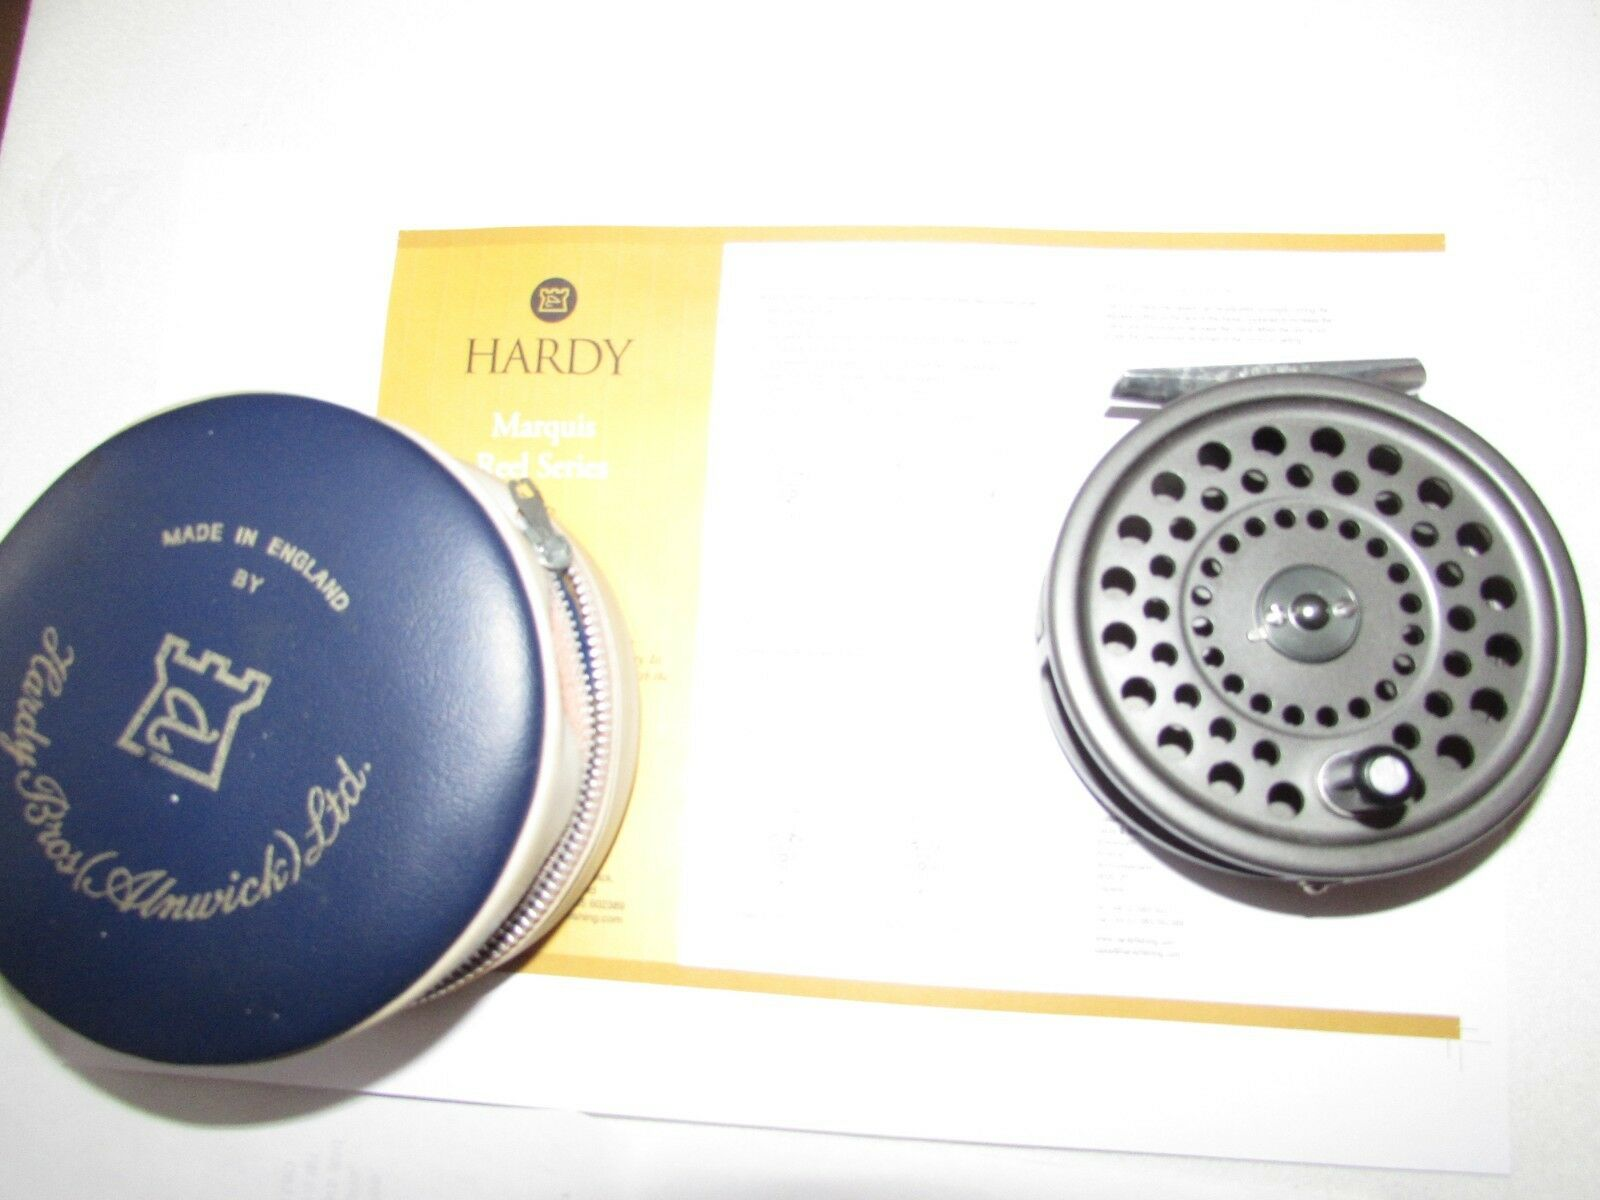 Stunning vintage Hardy Marquis 8 9 trout  fly fishing reel & case etc ...  on sale 70% off